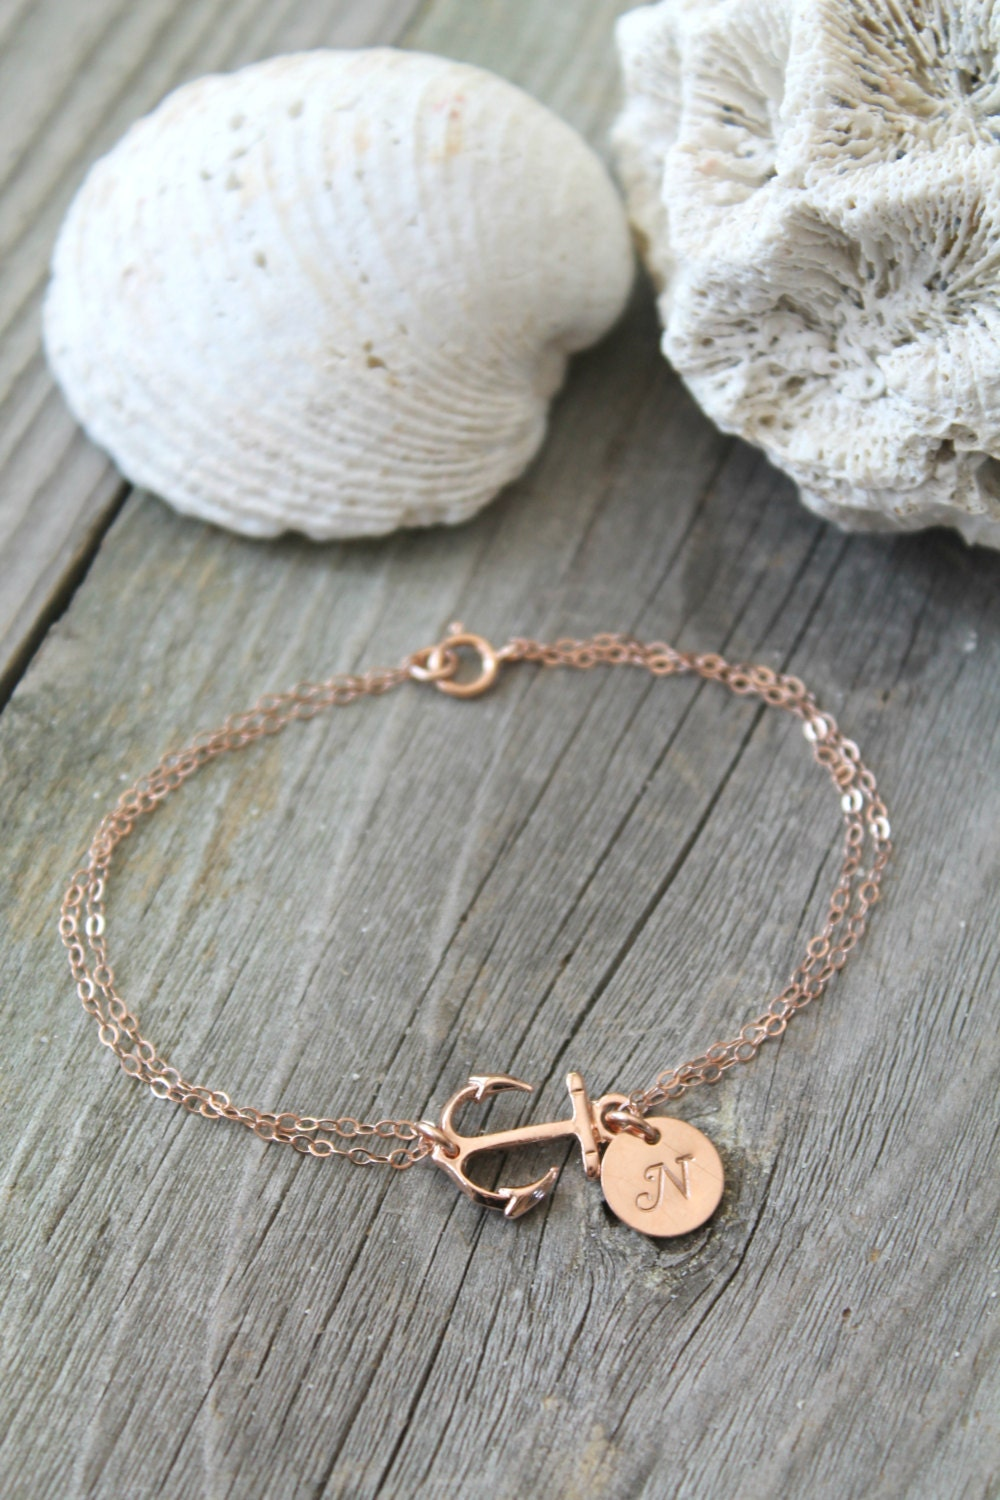 Personalized 14k Rose Gold Filled Anchor Bracelet With Custom